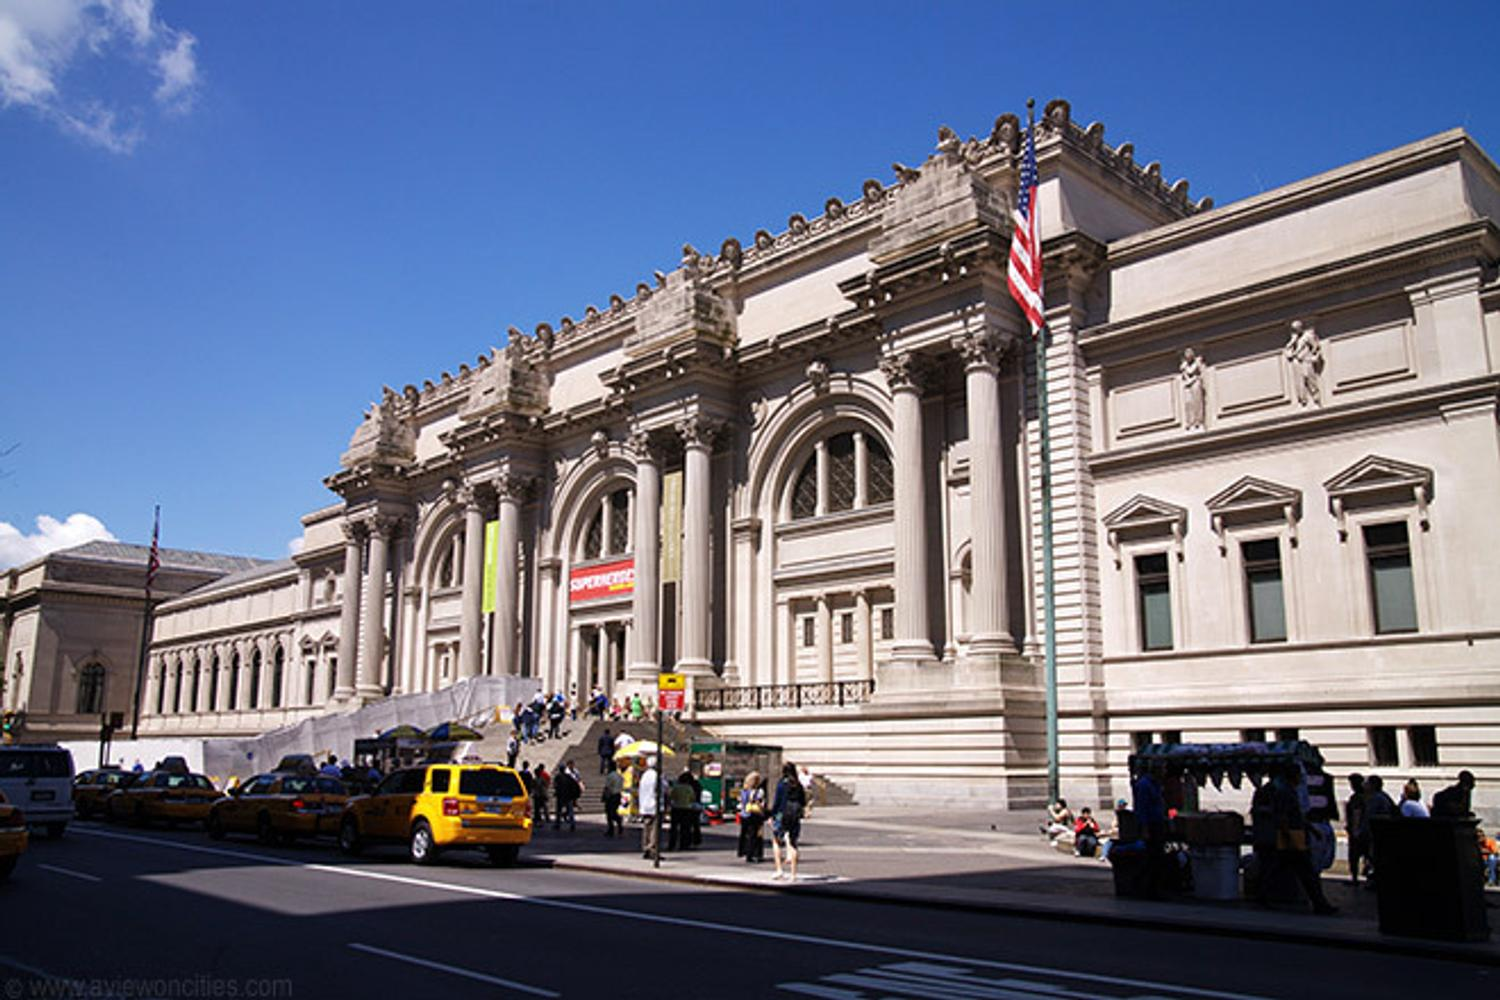 The renowned Metropolitan Museum of Art has one of the greatest art collections of the world. In formation since , the Metropolitan now contains more than two million works of art from all points of the compass, ancient through modern times.